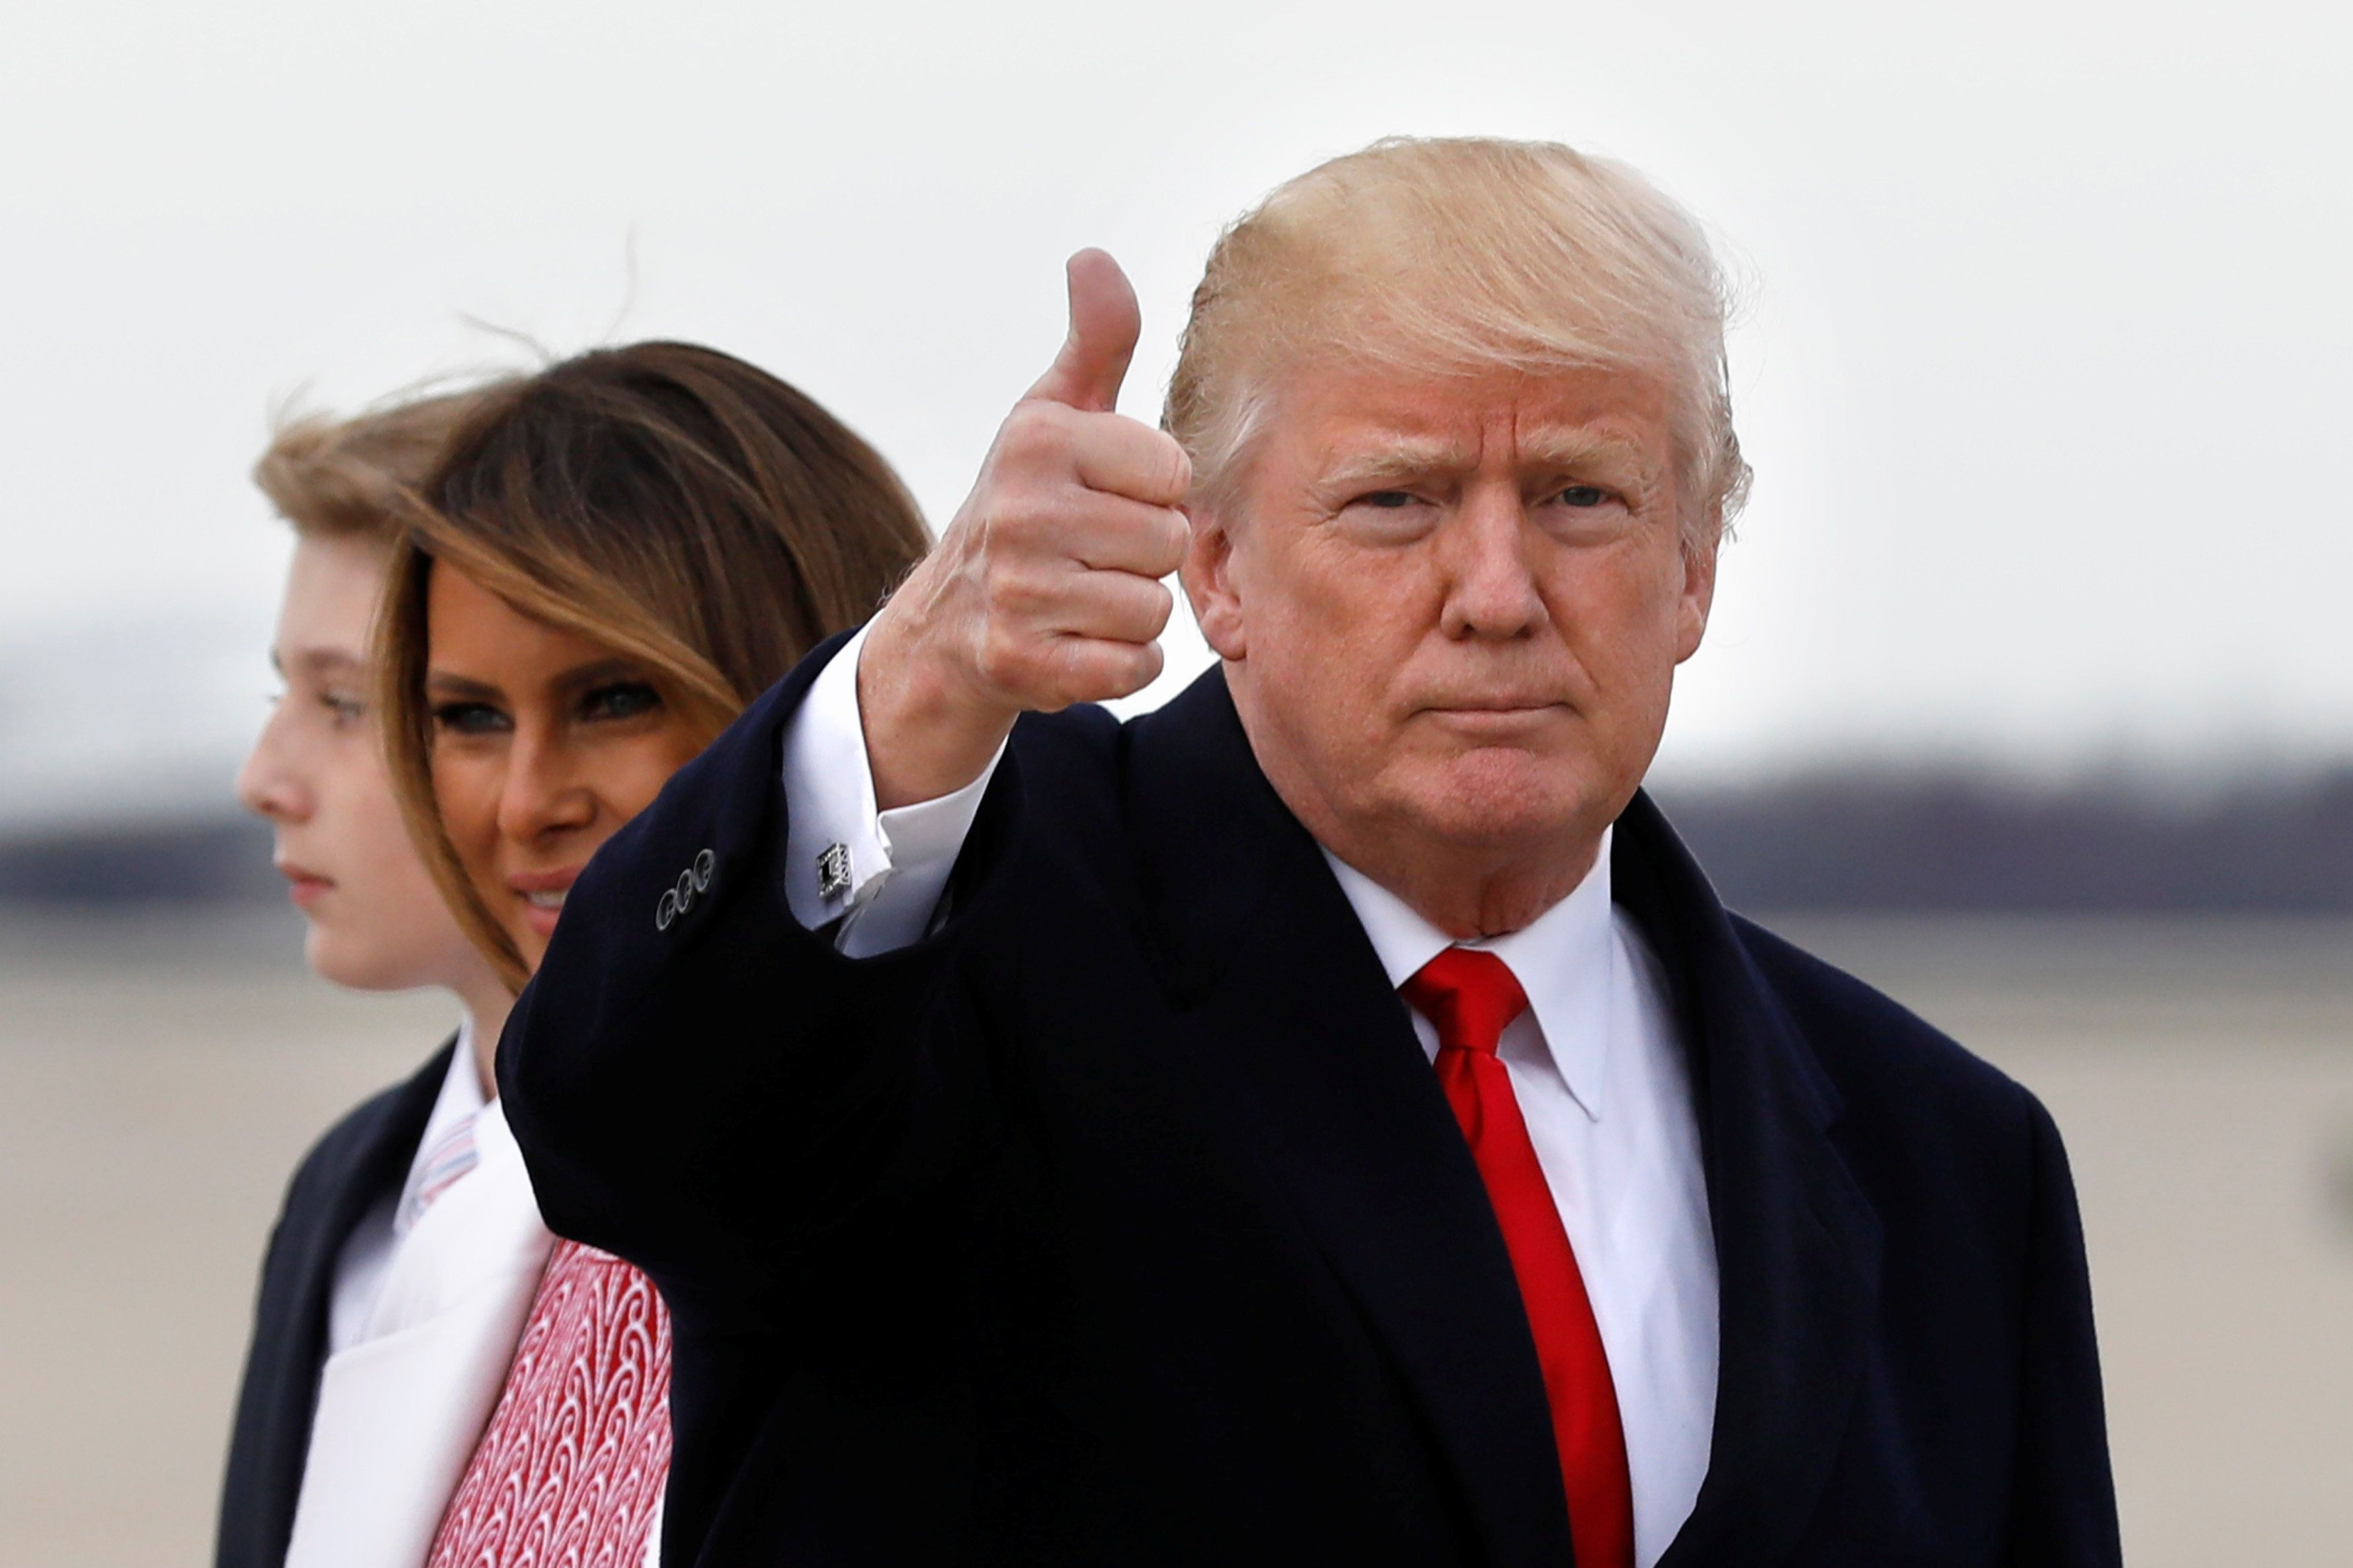 U.S. President Donald Trump gestures to the media as he arrives with first lady Melania Trump and their son Barron at Joint Base Andrews in Maryland, U.S., after the Easter weekend in Palm Beach, Florida, April 1, 2018. REUTERS/Yuri Gripas